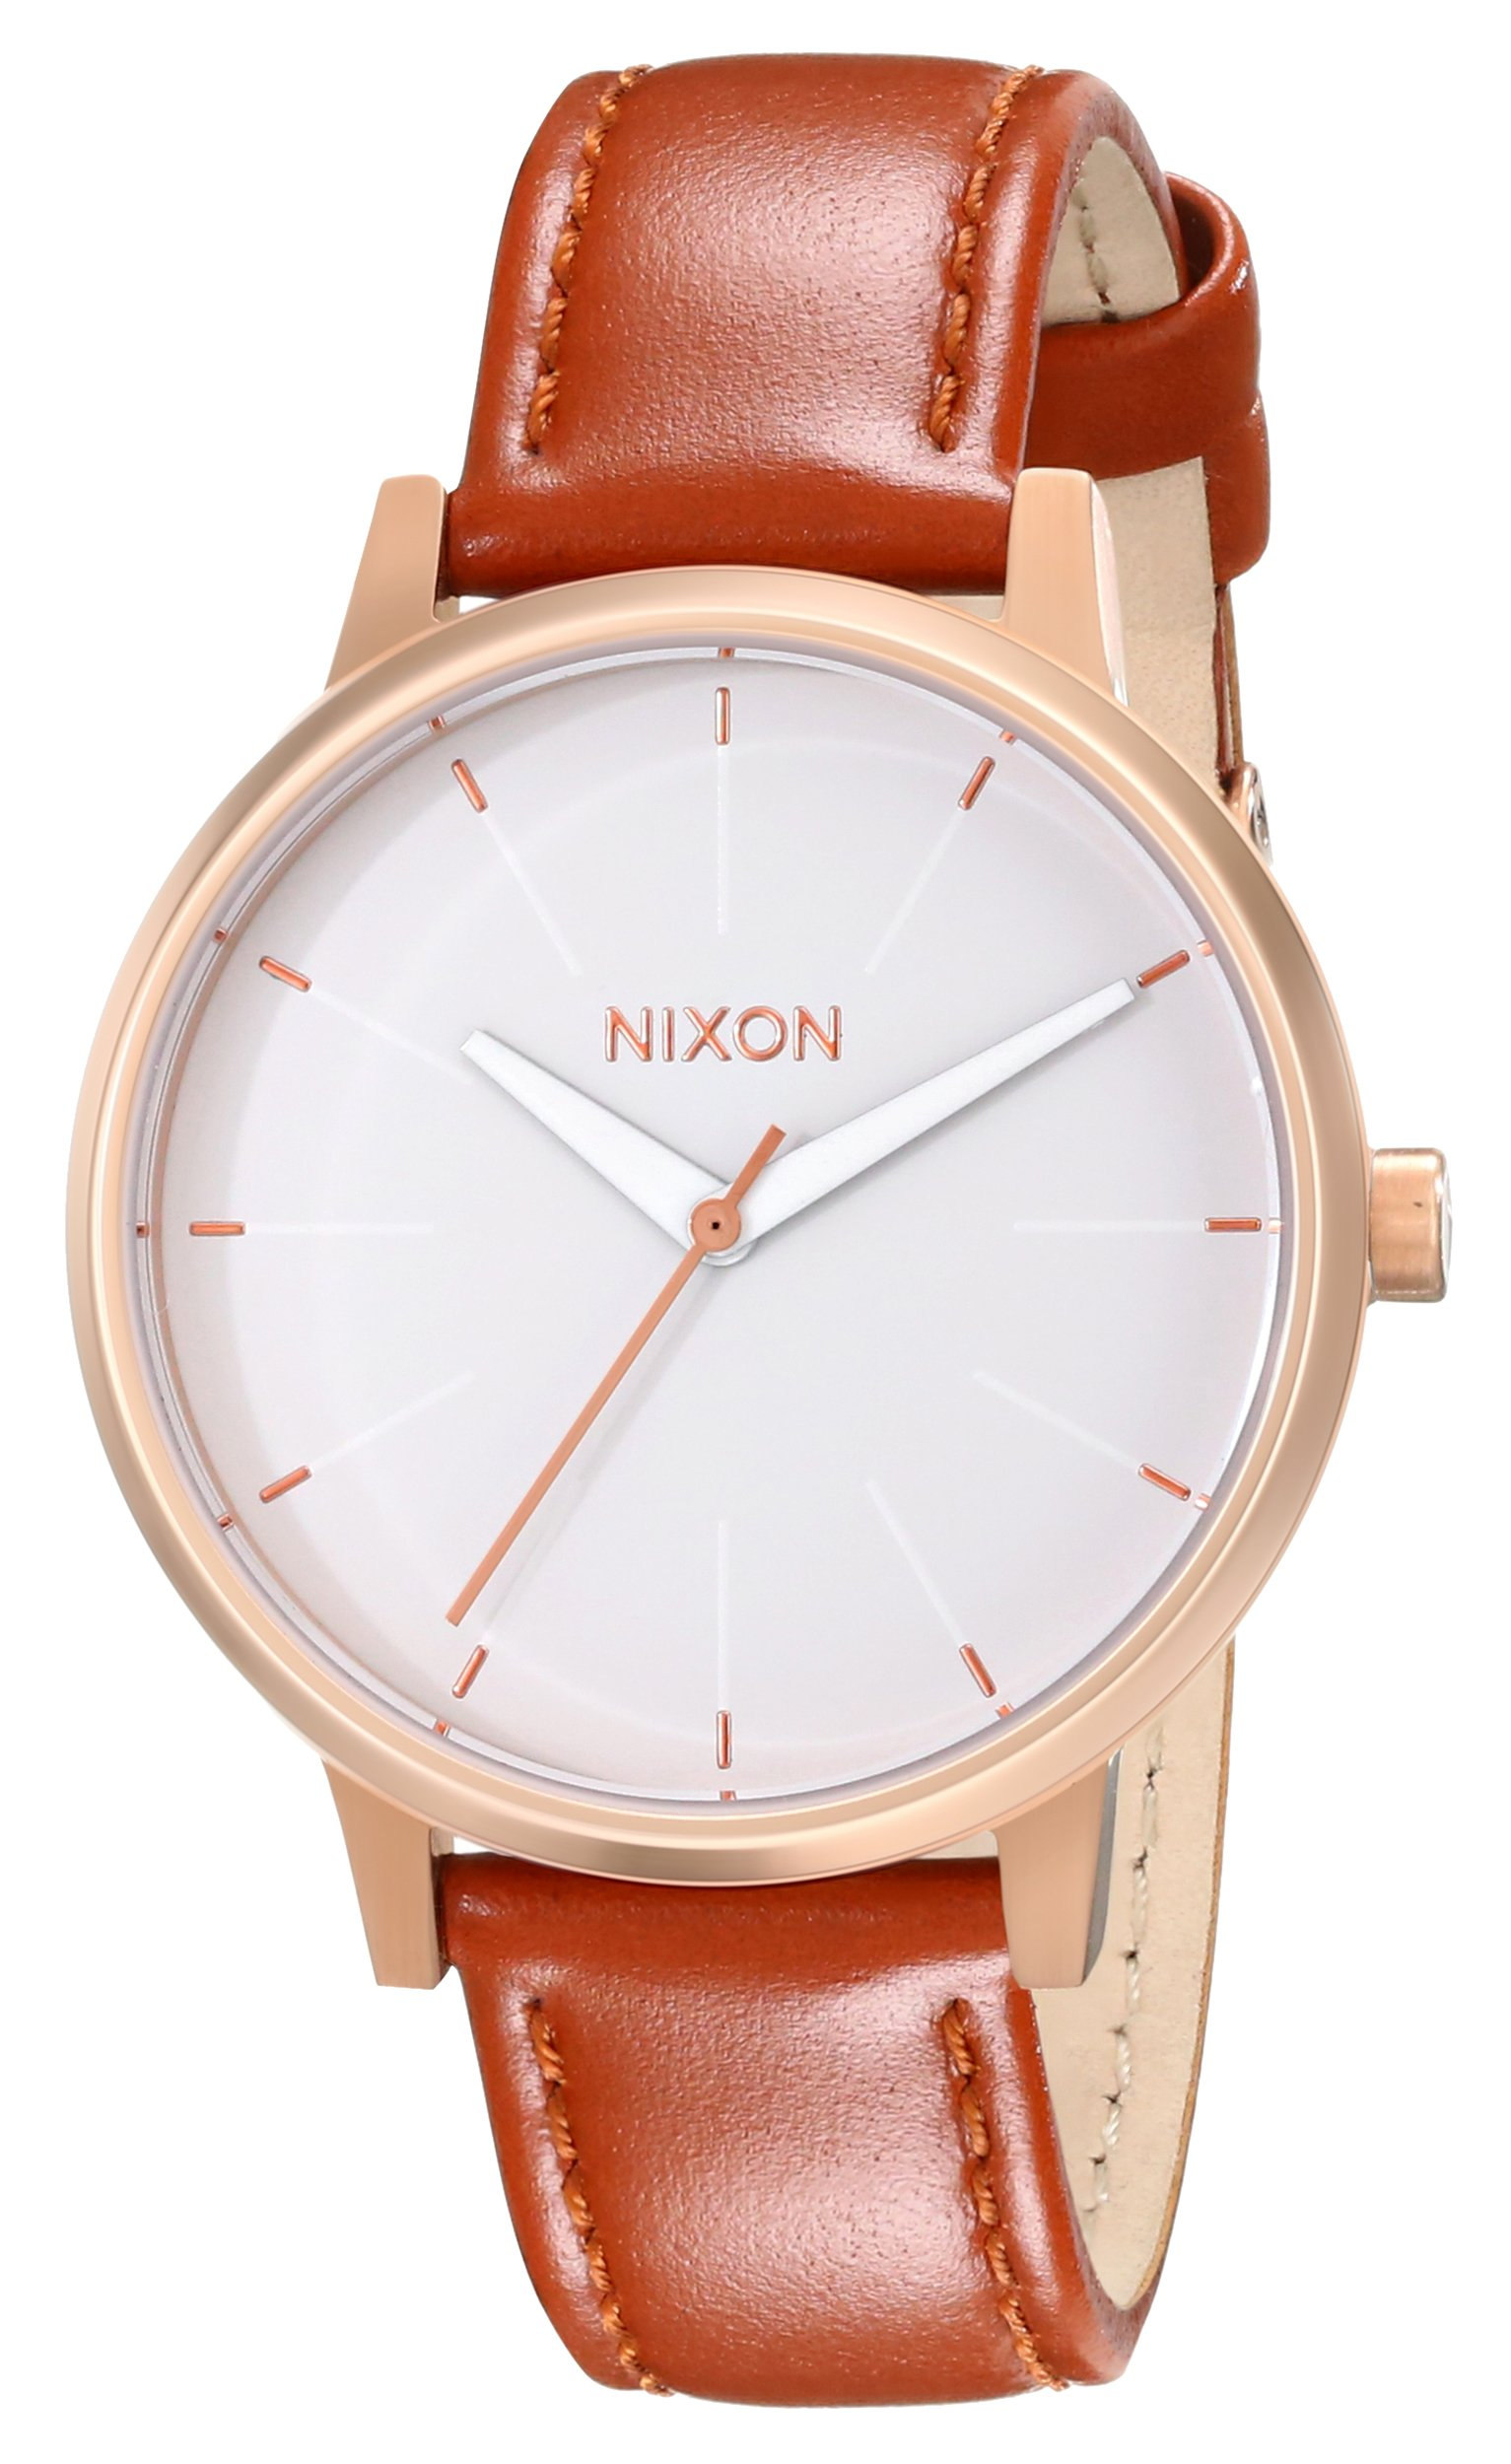 Nixon Women's A1081045 Kensington Leather Watch by NIXON